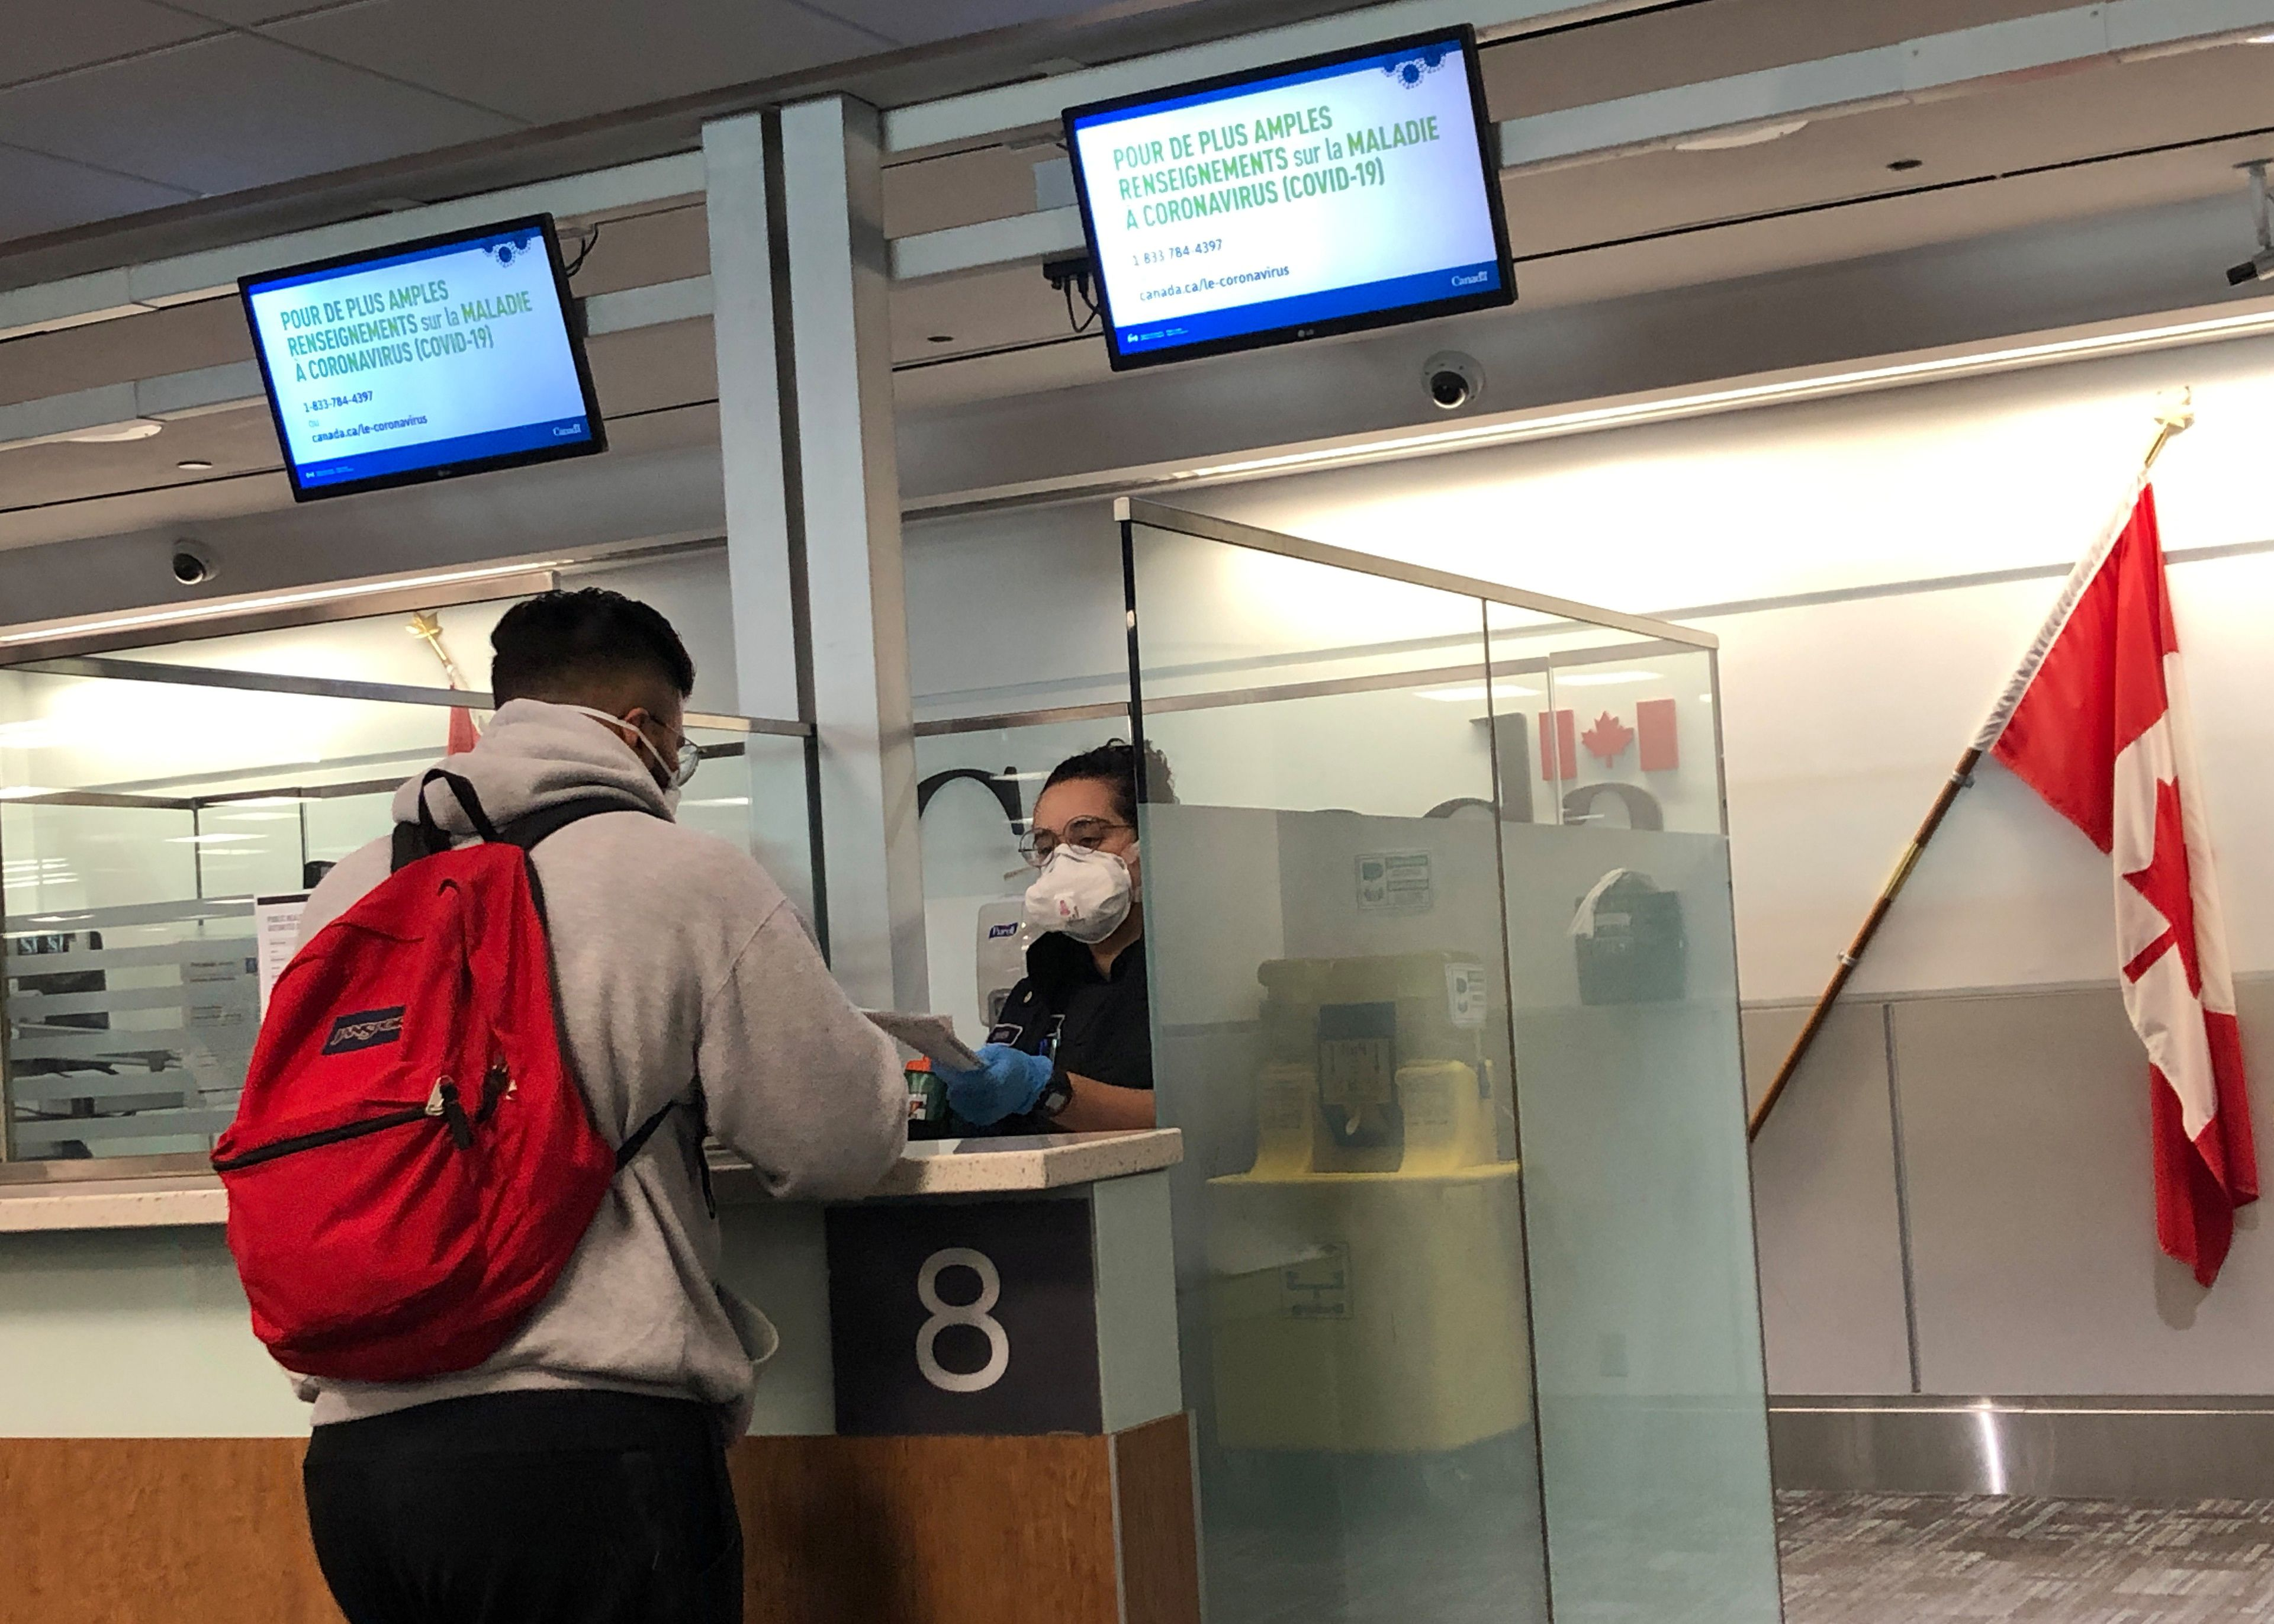 Border Agents To Start Warning All Air Travellers Of 14 Day Isolation Period The Globe And Mail